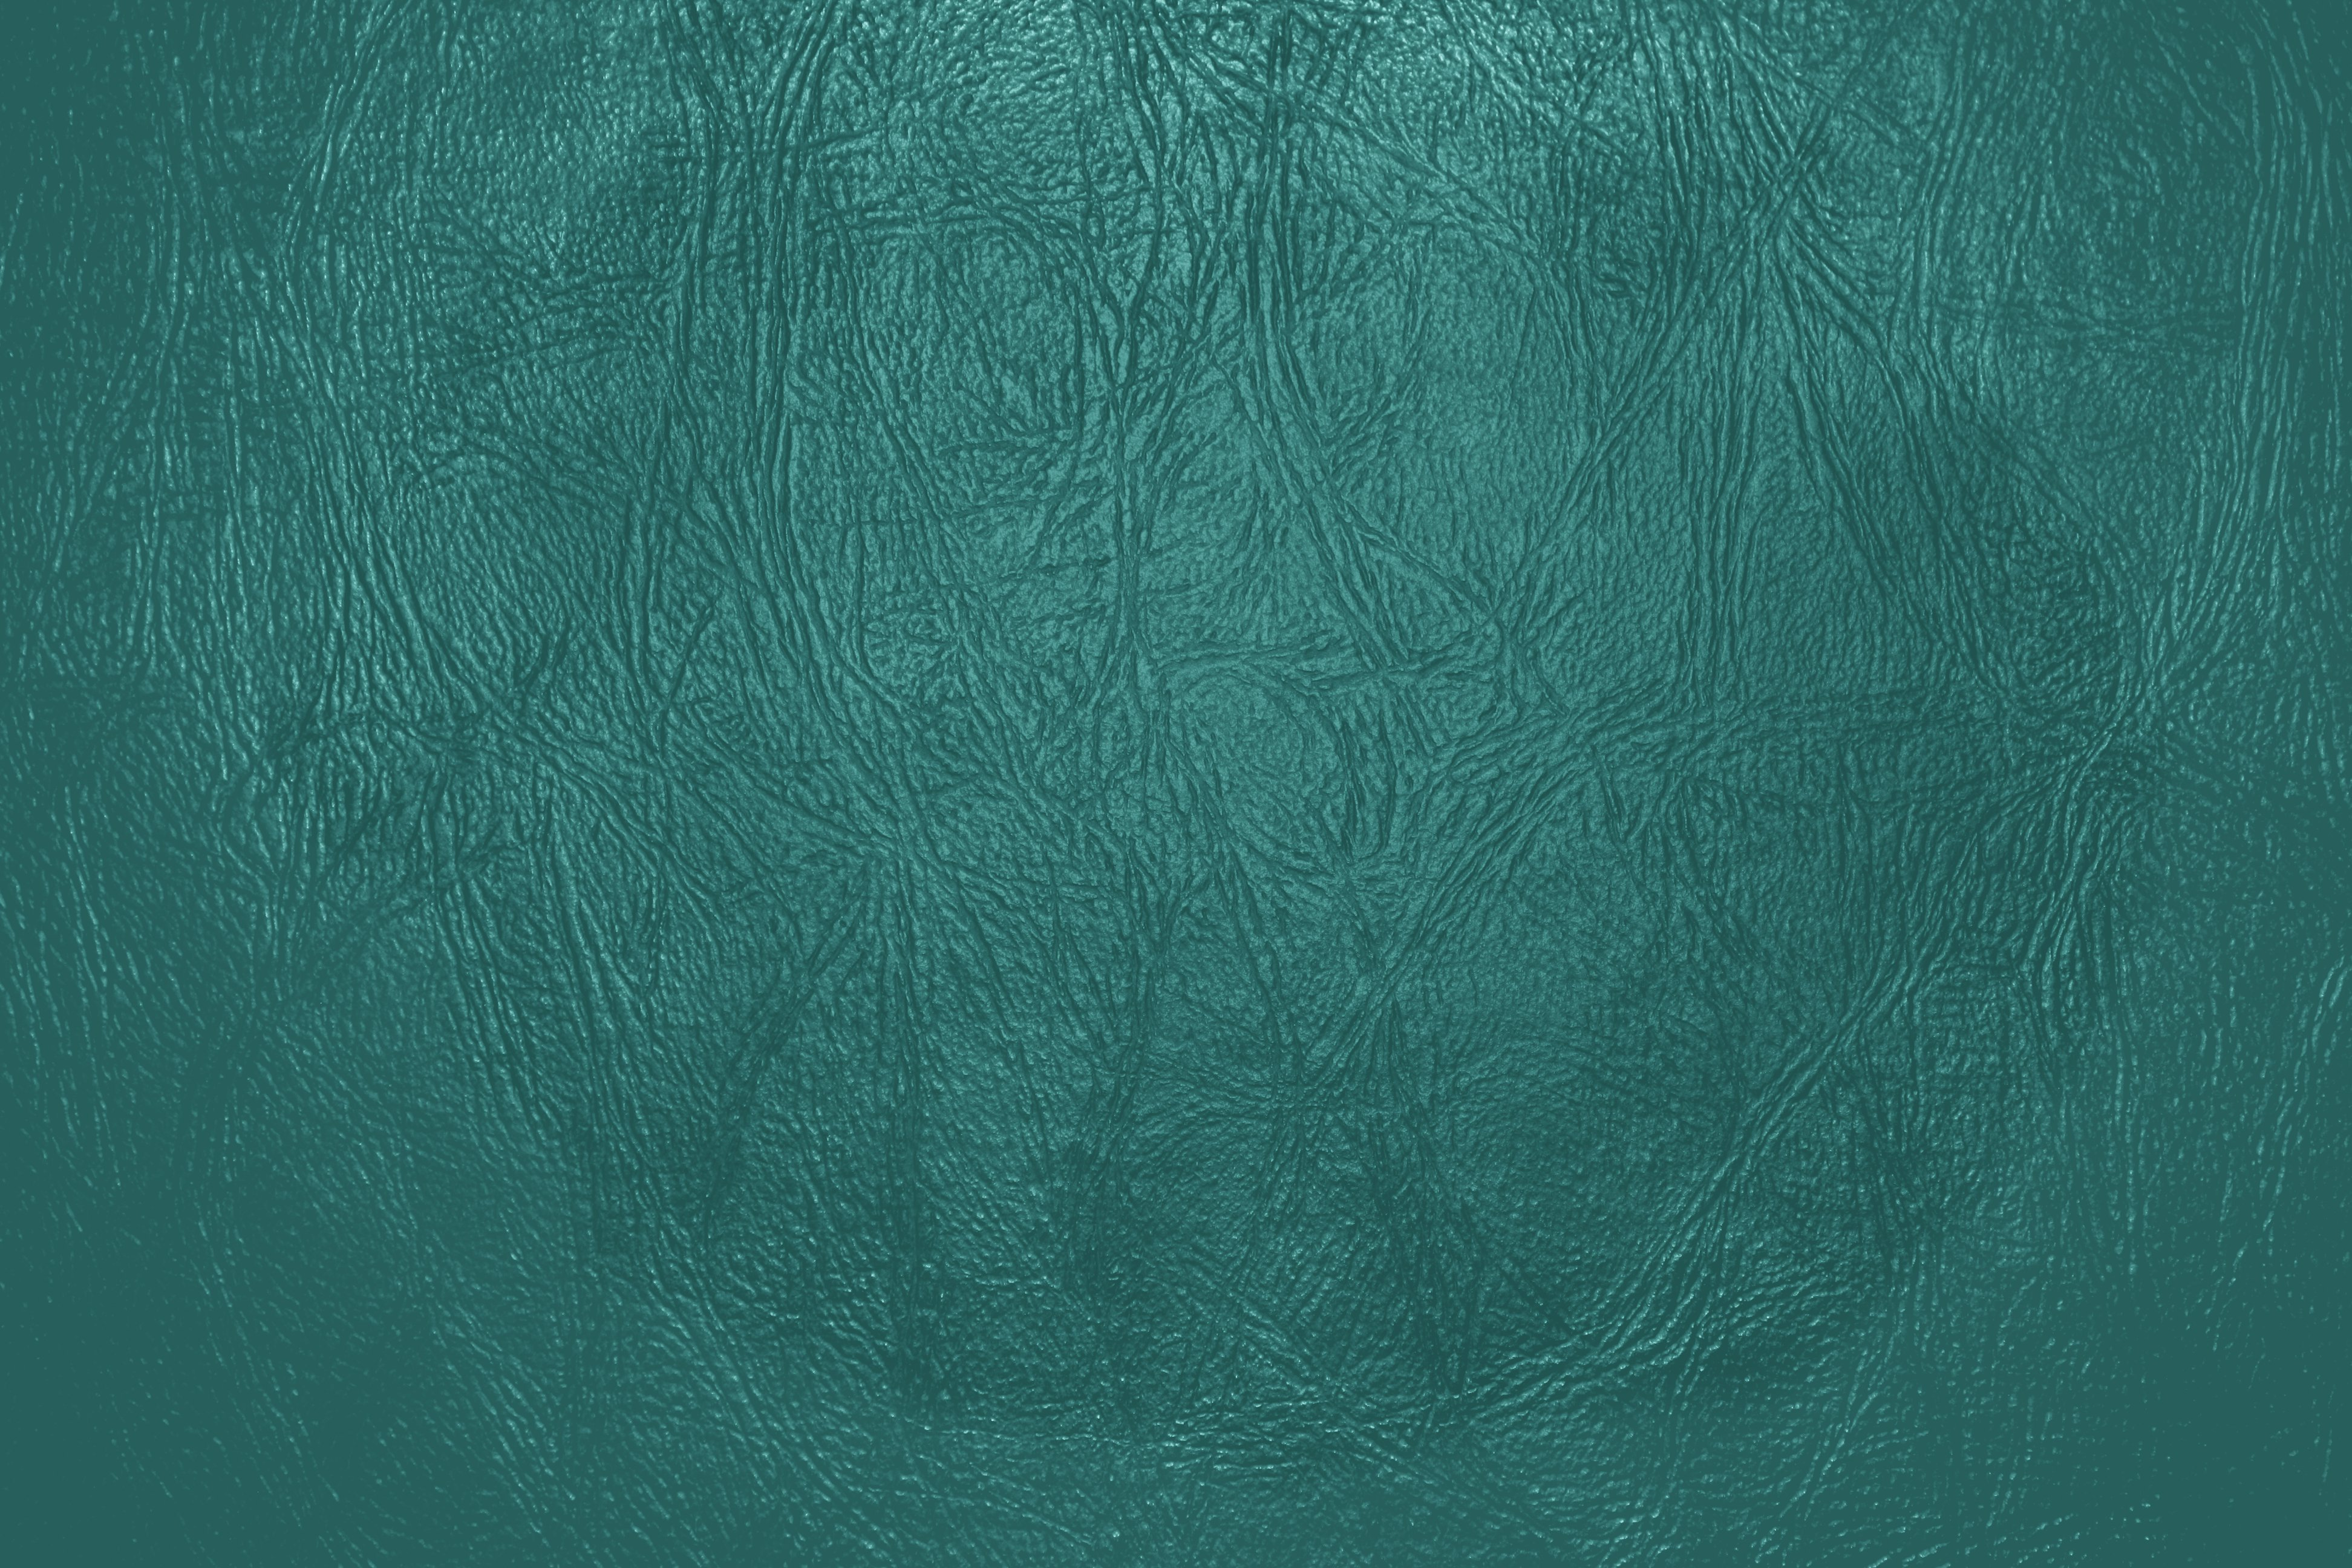 Teal Texture Background HD Wallpapers